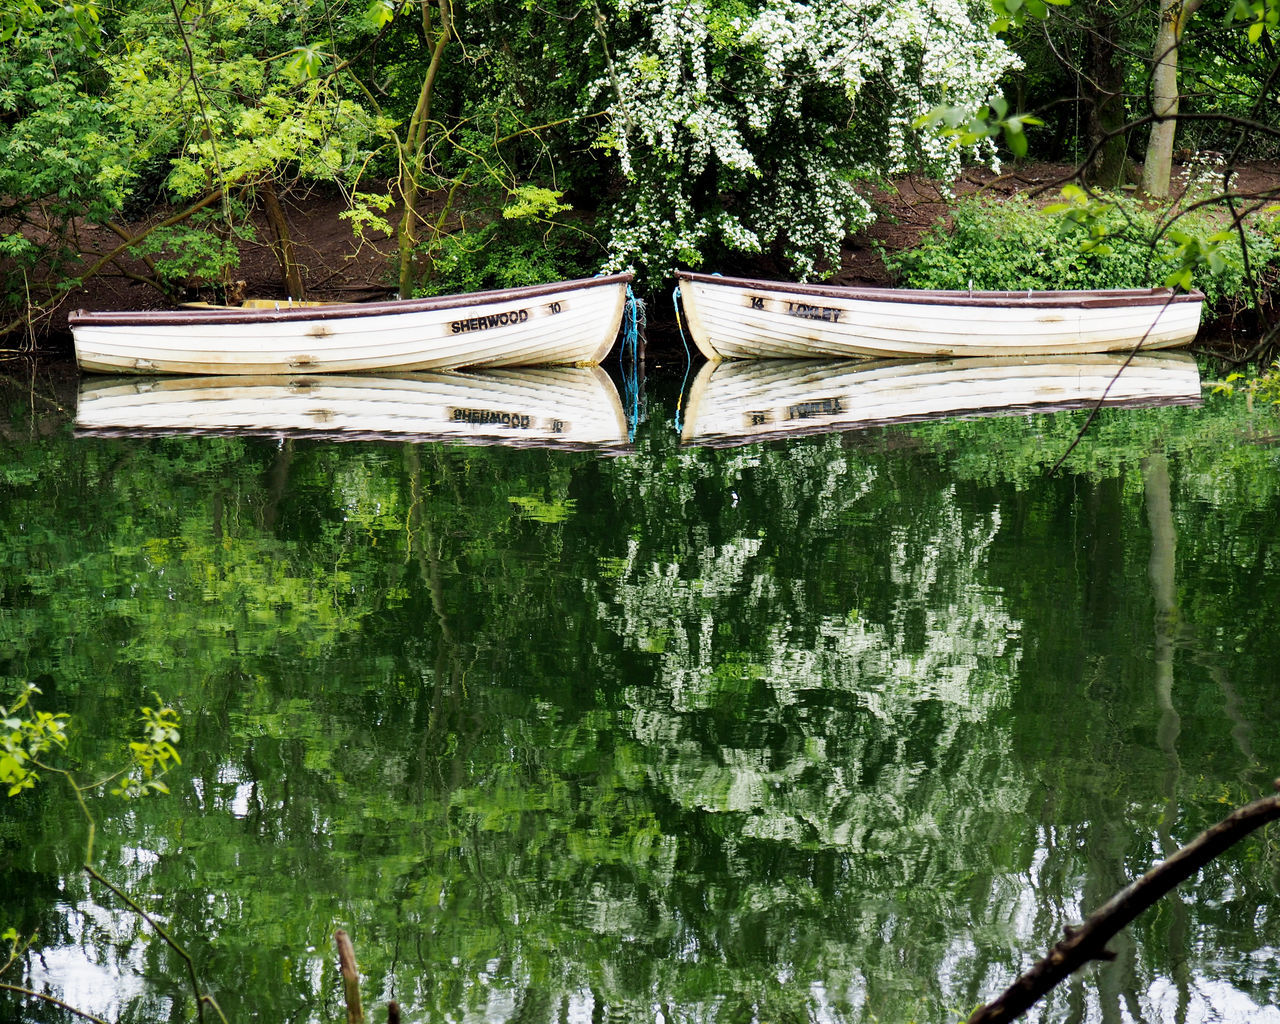 Beauty In Nature Boats Close-up Day Green Color Growth Nature No People Outdoors Plant Reflection Reflection Tree Water